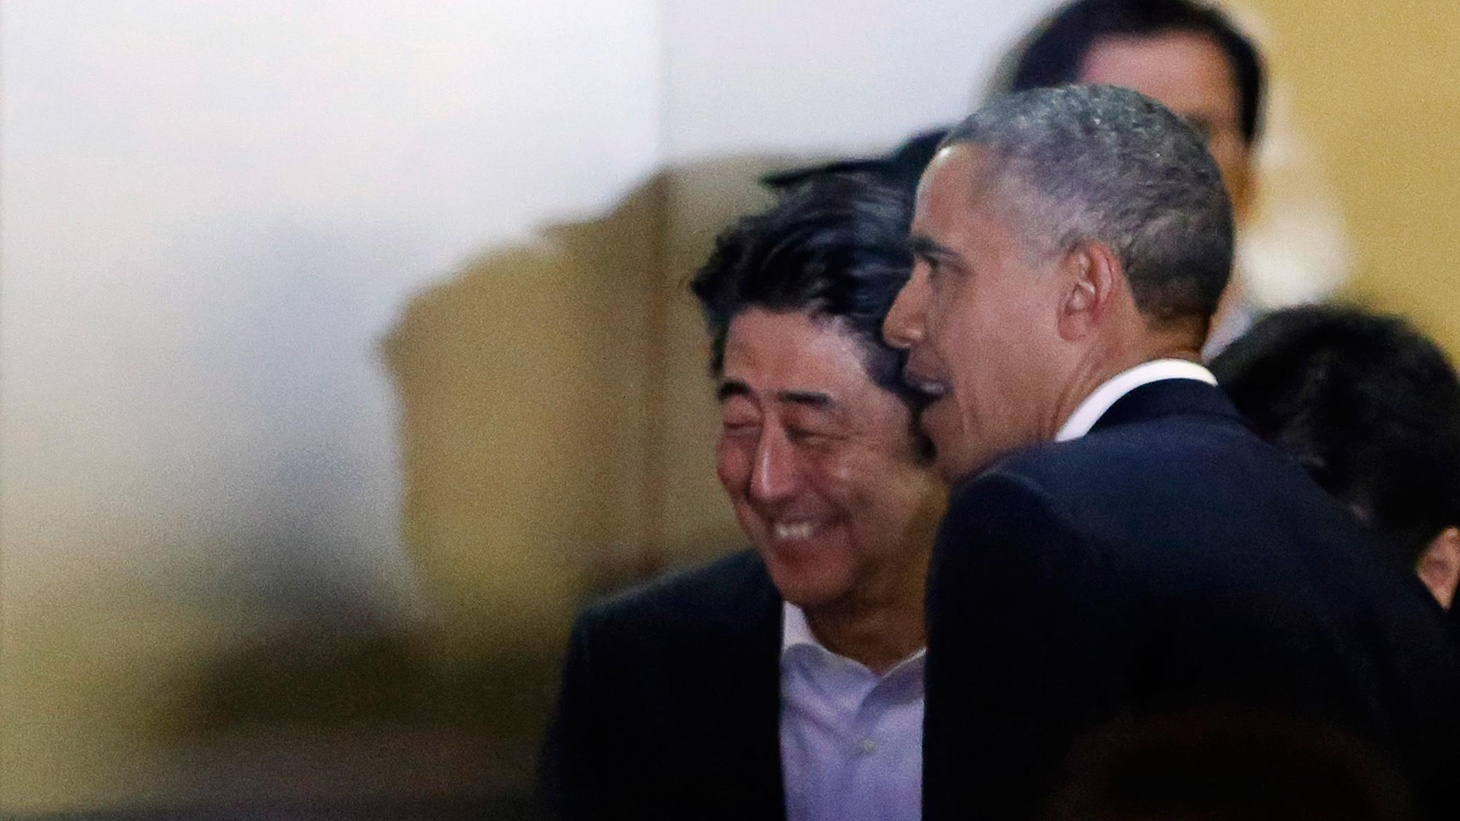 On this week's trip to Asia, President Obama will try to make up for lost time, despite continued preoccupation with the Middle East and Russia's threat to Ukraine. Can he reassure allies about trade relations and mutual defense without alienating China?